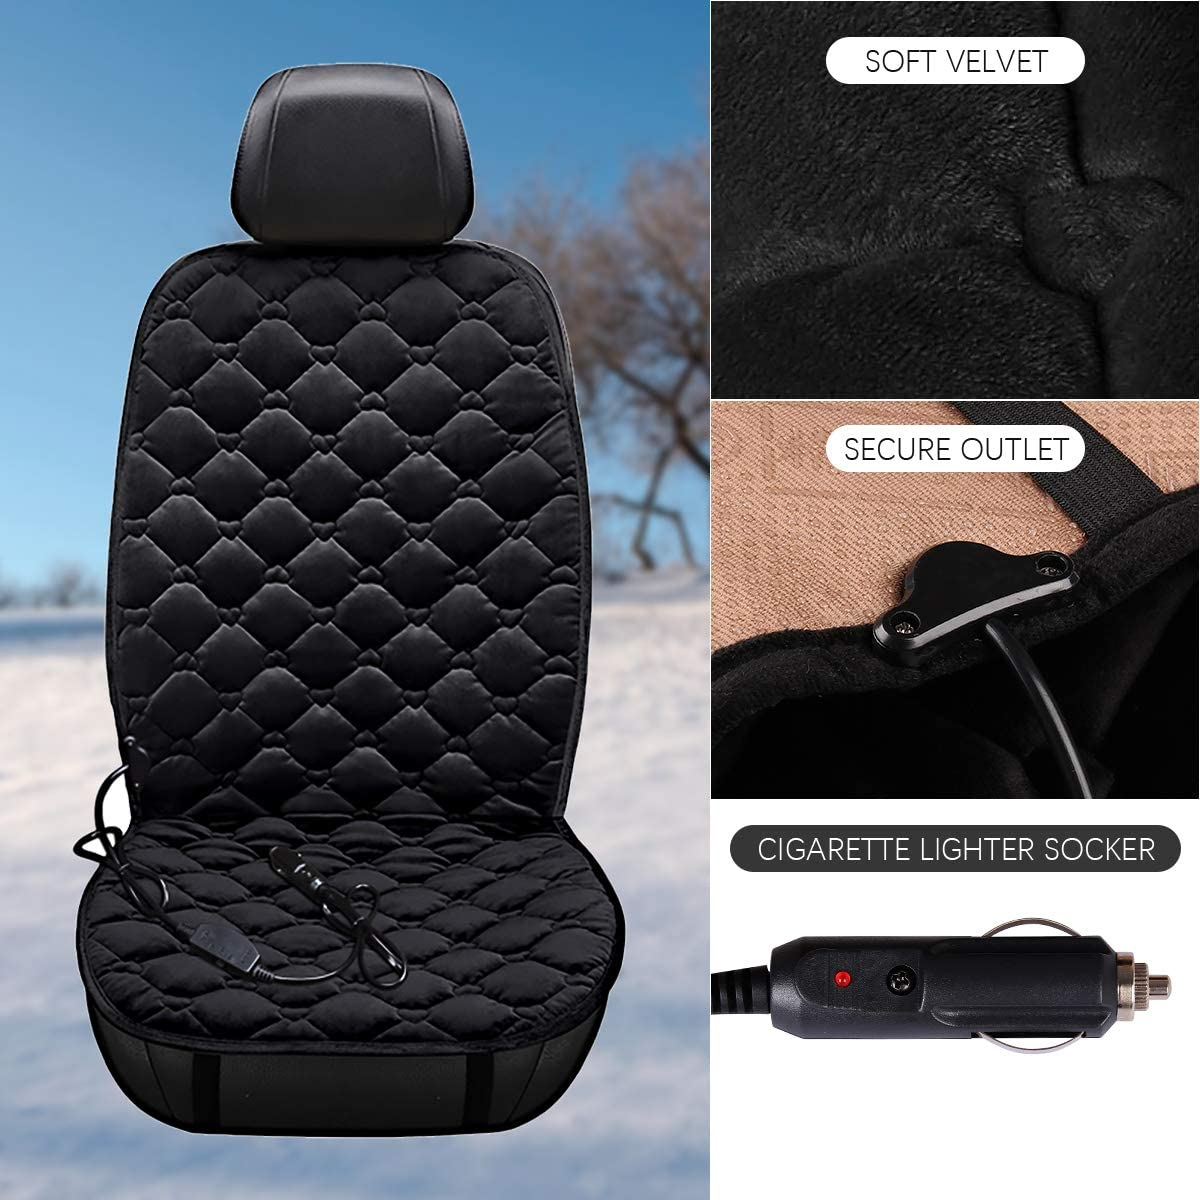 Bilisder Heated Car Seat Covers Warm Car Front Seat heated Cushions Heated Seat Pad 2 Level Temp Setting Universal 12V